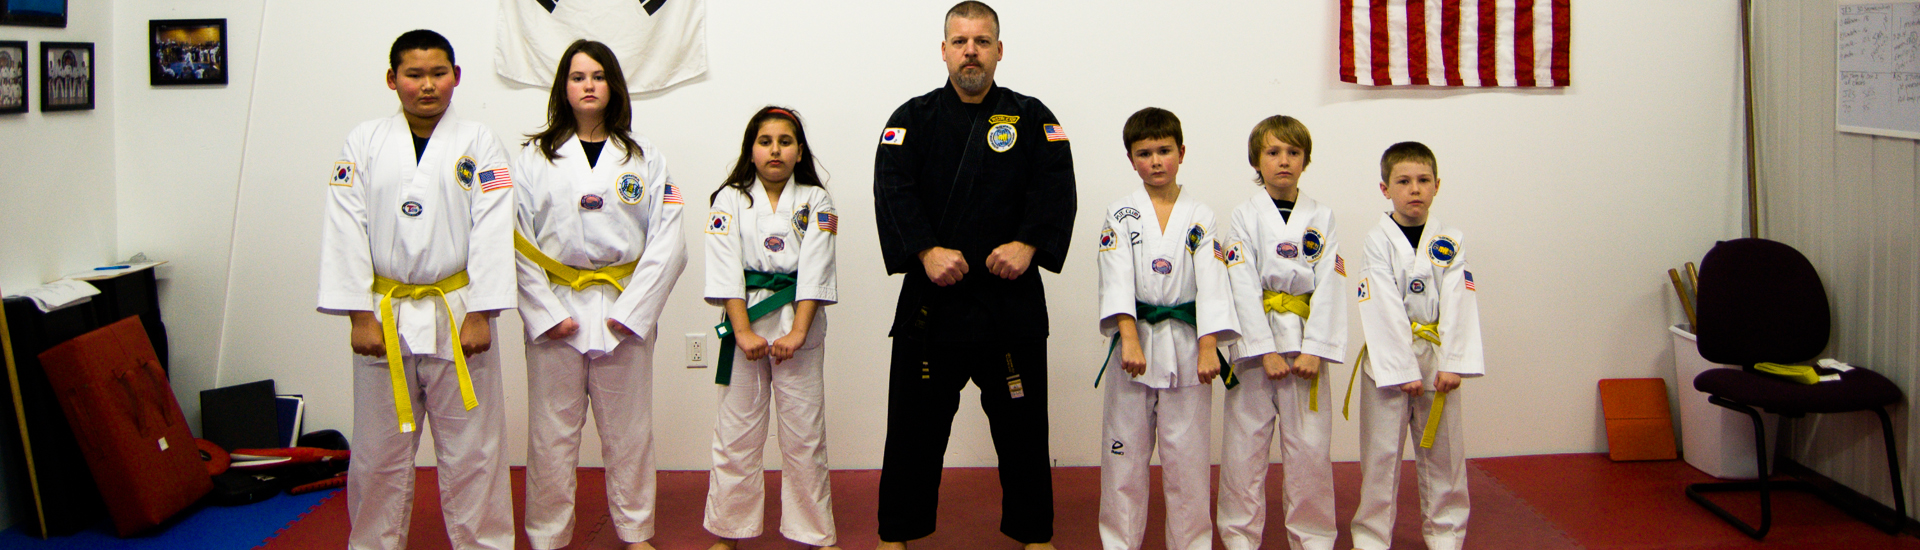 ECTKD_Dec_Belts-3813